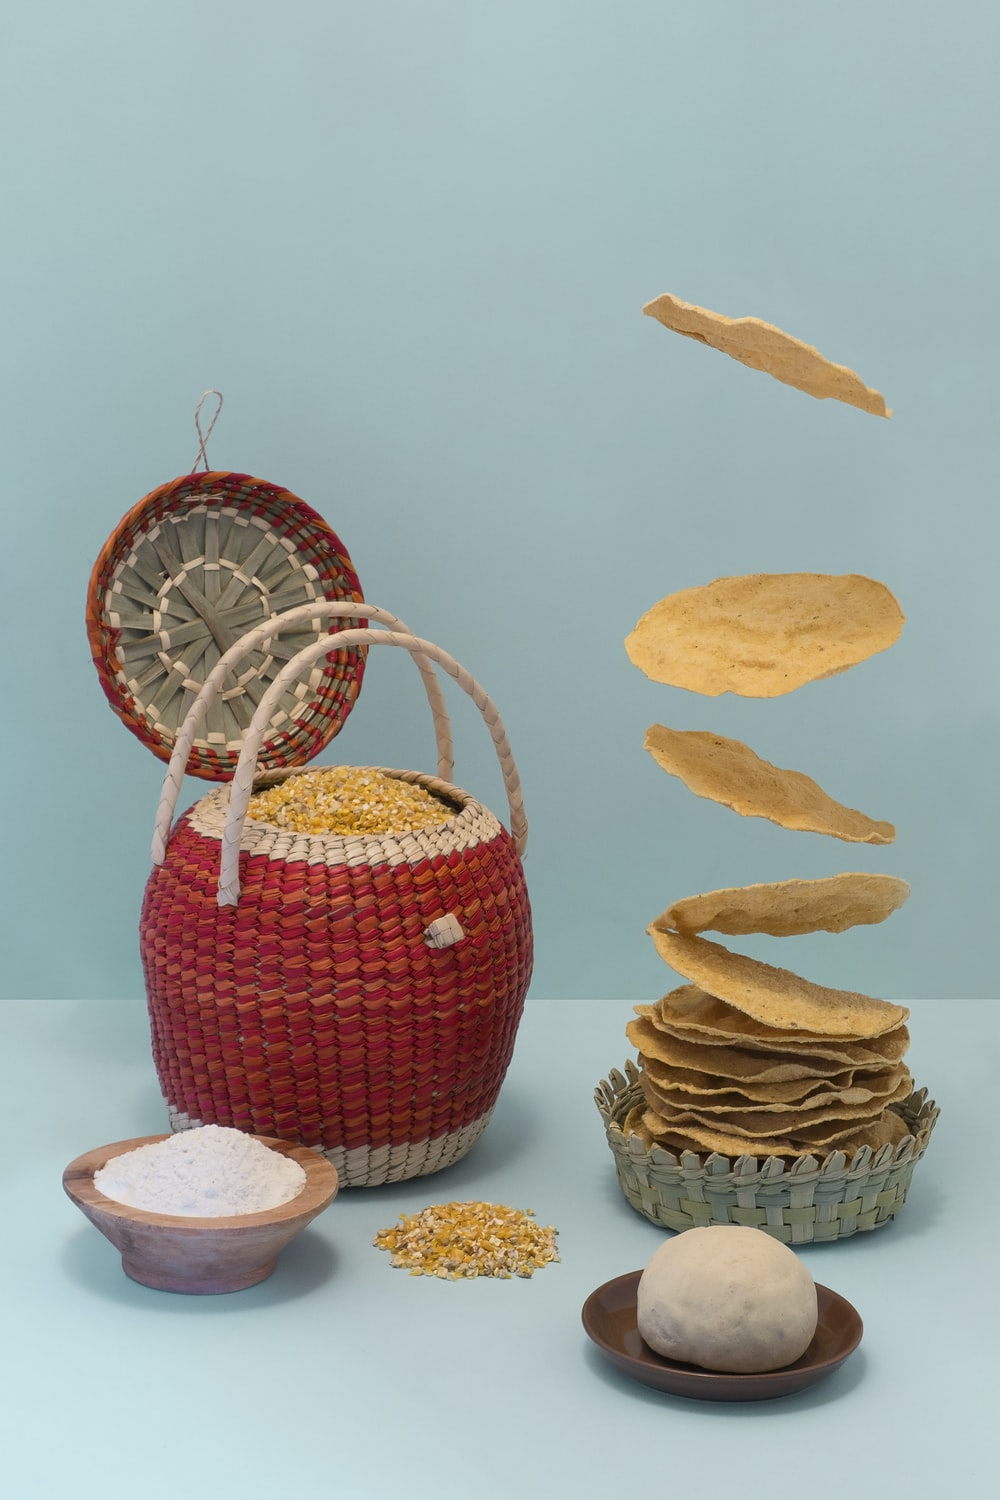 red and white wicker basket